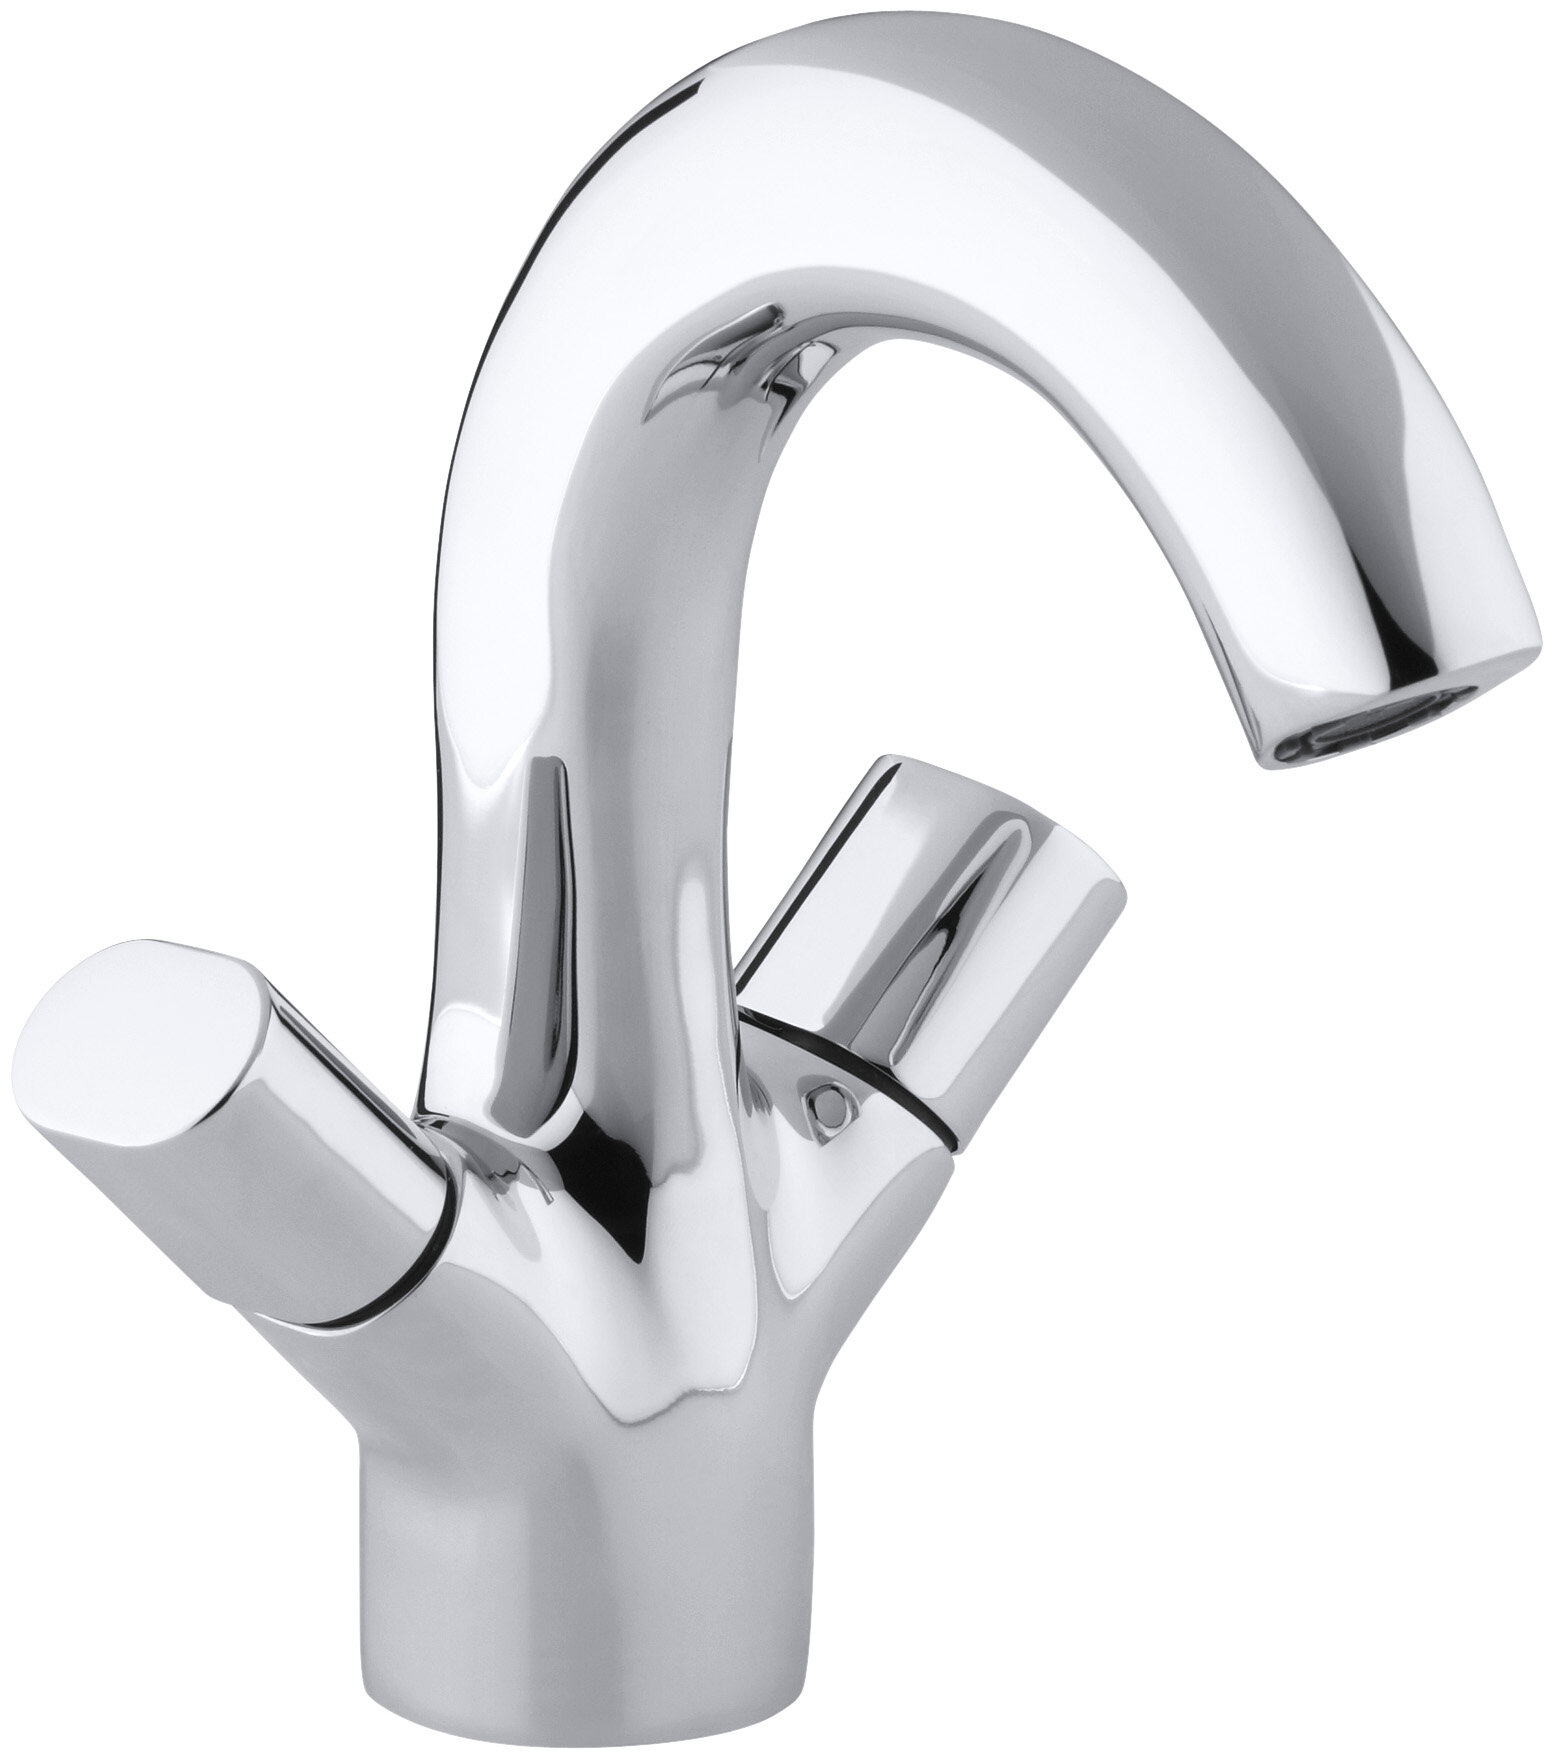 by design steel for top size hole picks pull chrome pikus arc kitchen bathroom modern full faucet out decor one sprayer faucets part of high nickel stainless with lillian contemporary